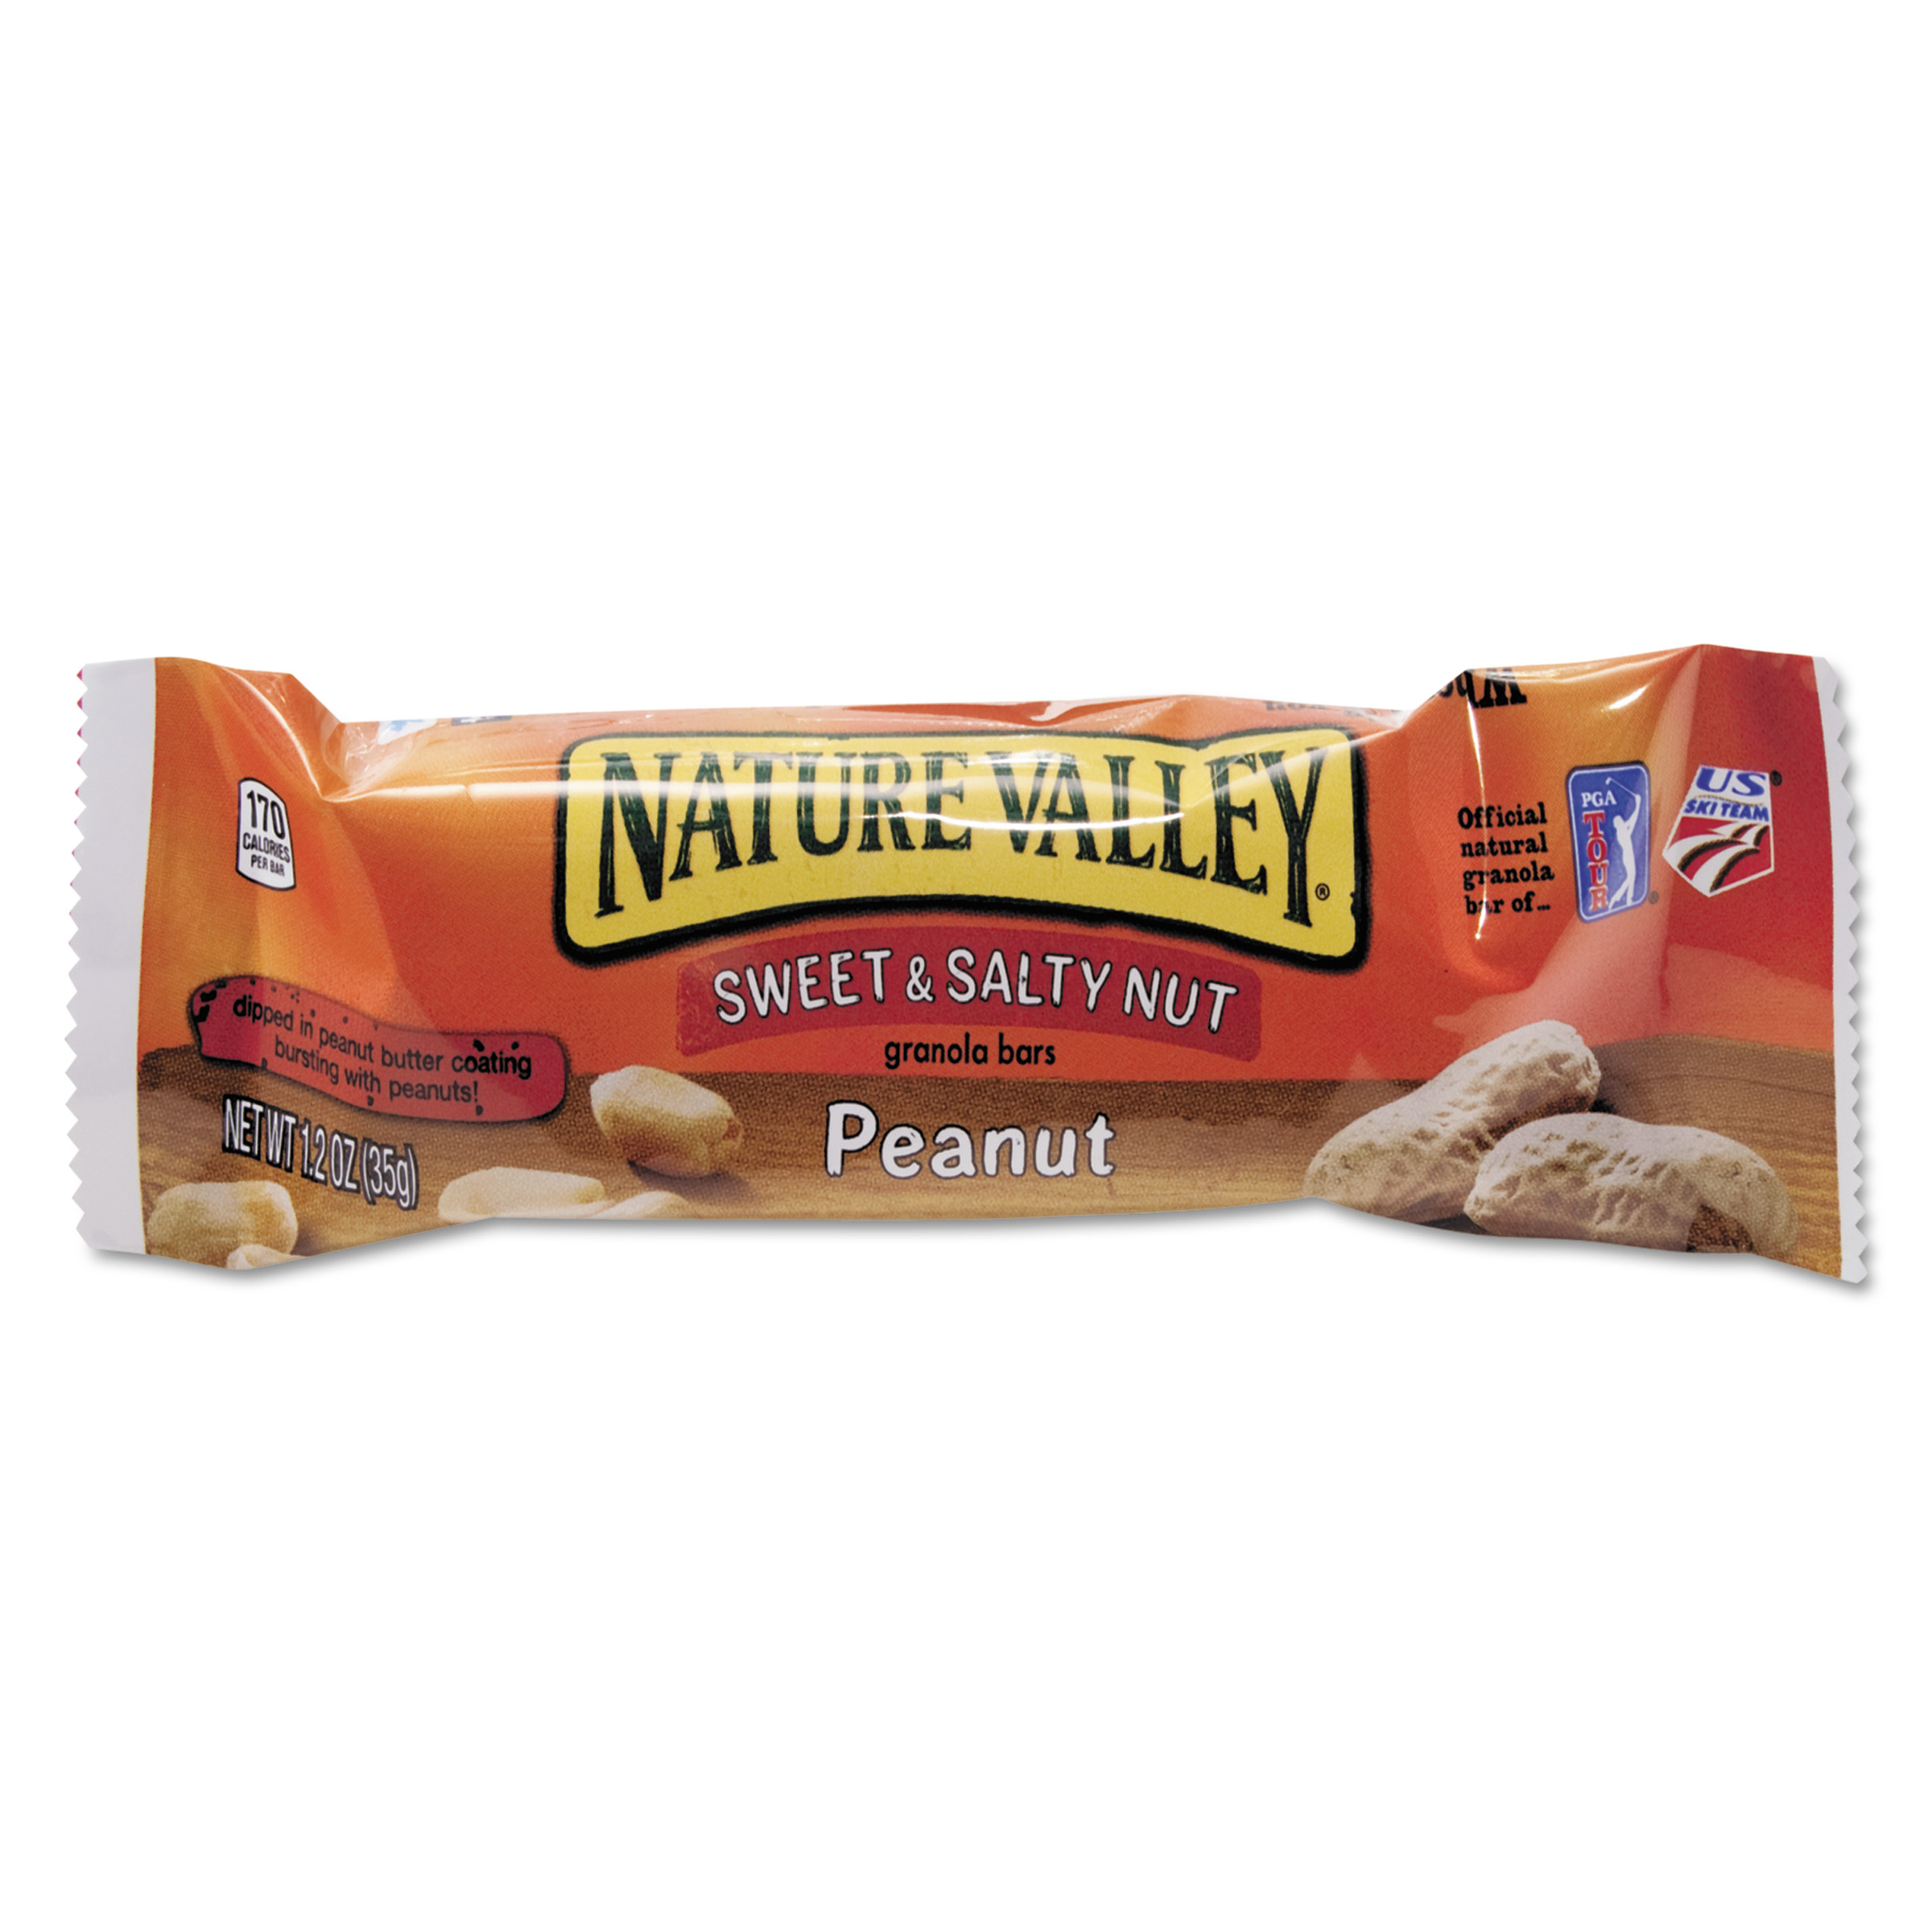 Nature Valley Nature Valley Granola Bars, Sweet & Salty Nut Peanut Cereal, 1.2oz Bar, 16/Box